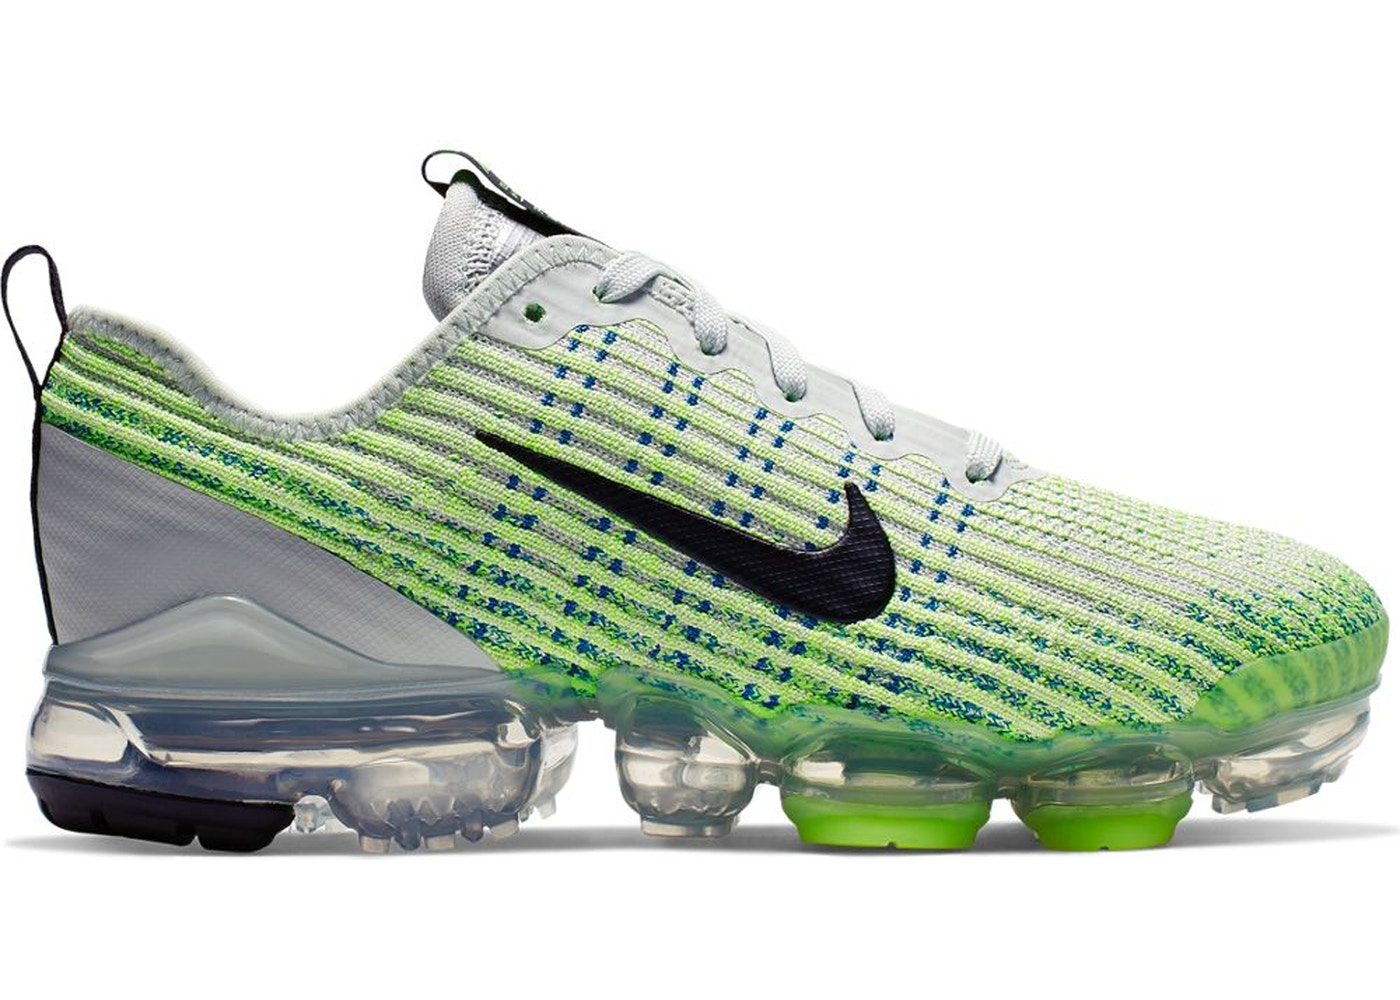 1145622907 Nike Air Max VaporMax Shoes - Release Date